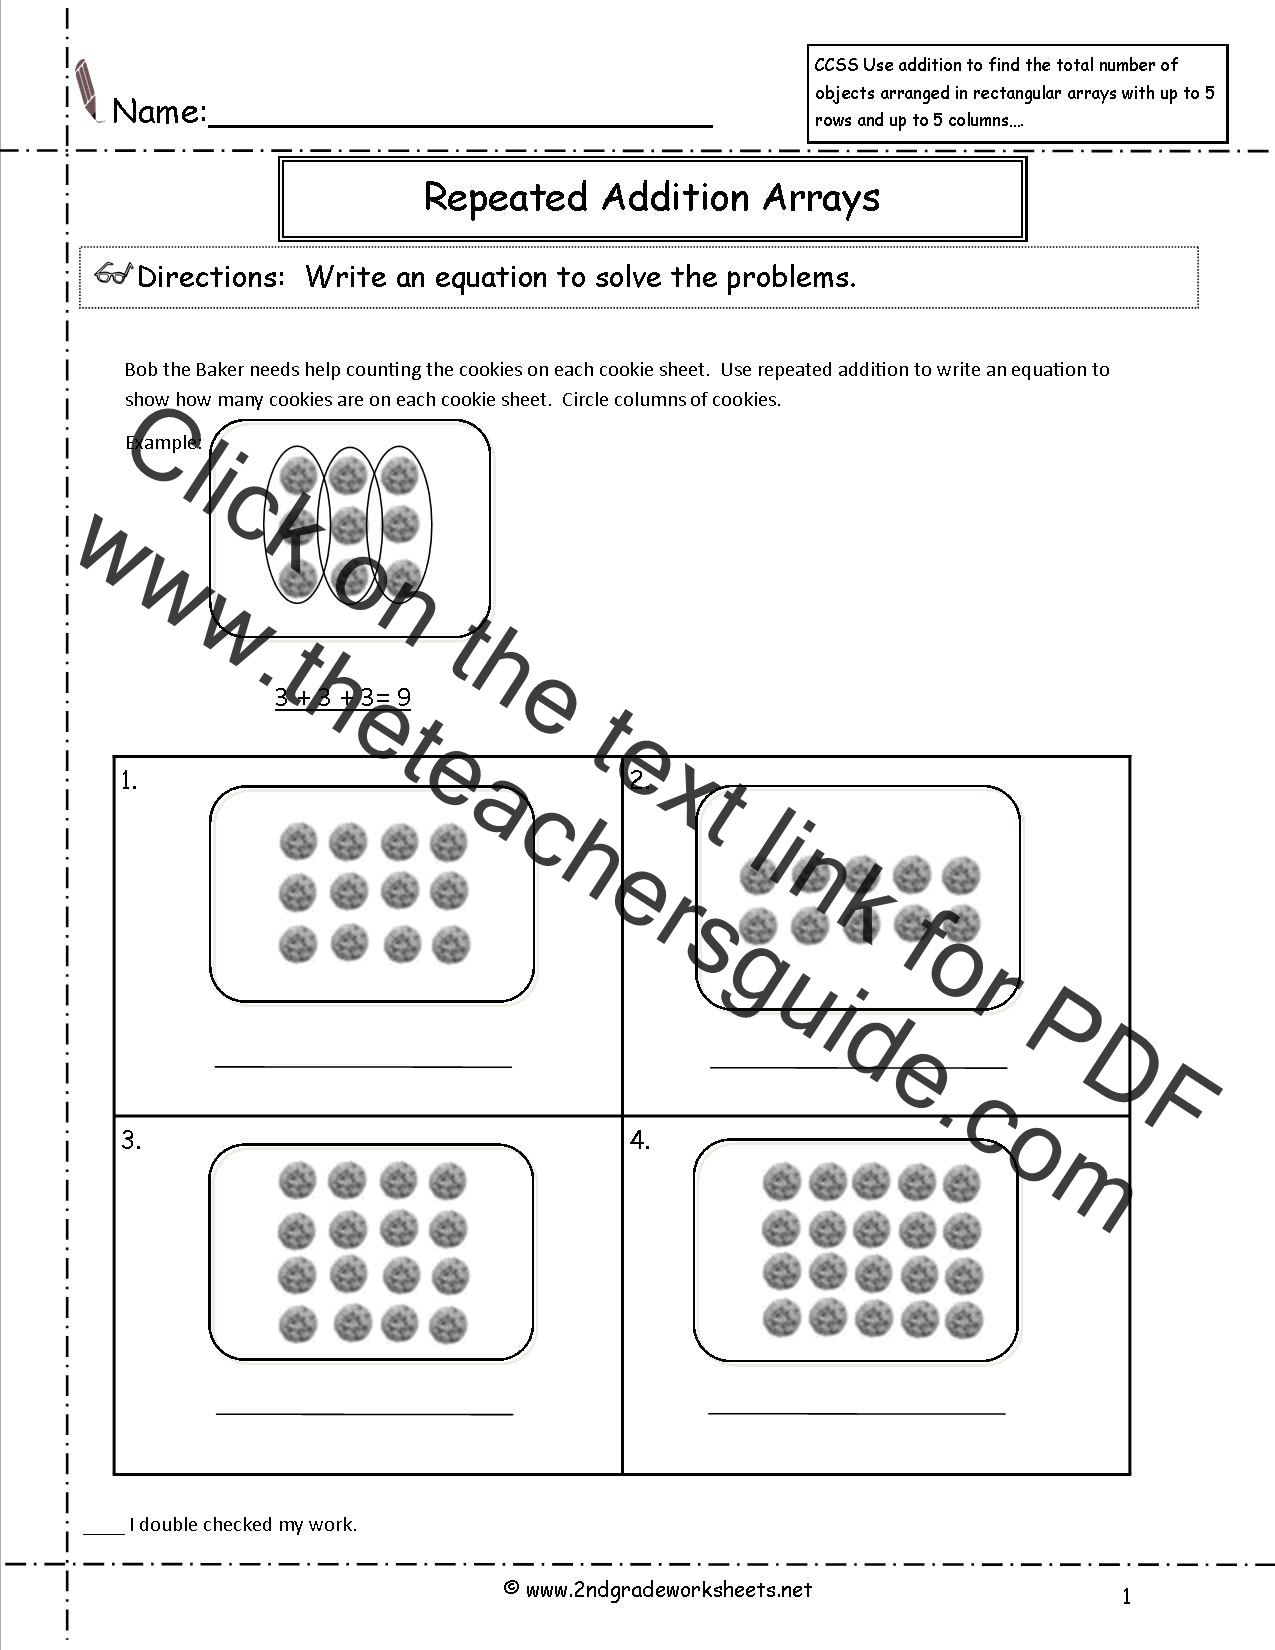 Worksheet Common Core Math Worksheets For 2nd Grade 2nd grade math common core state standards worksheets ccss 2 oa 4 worksheets